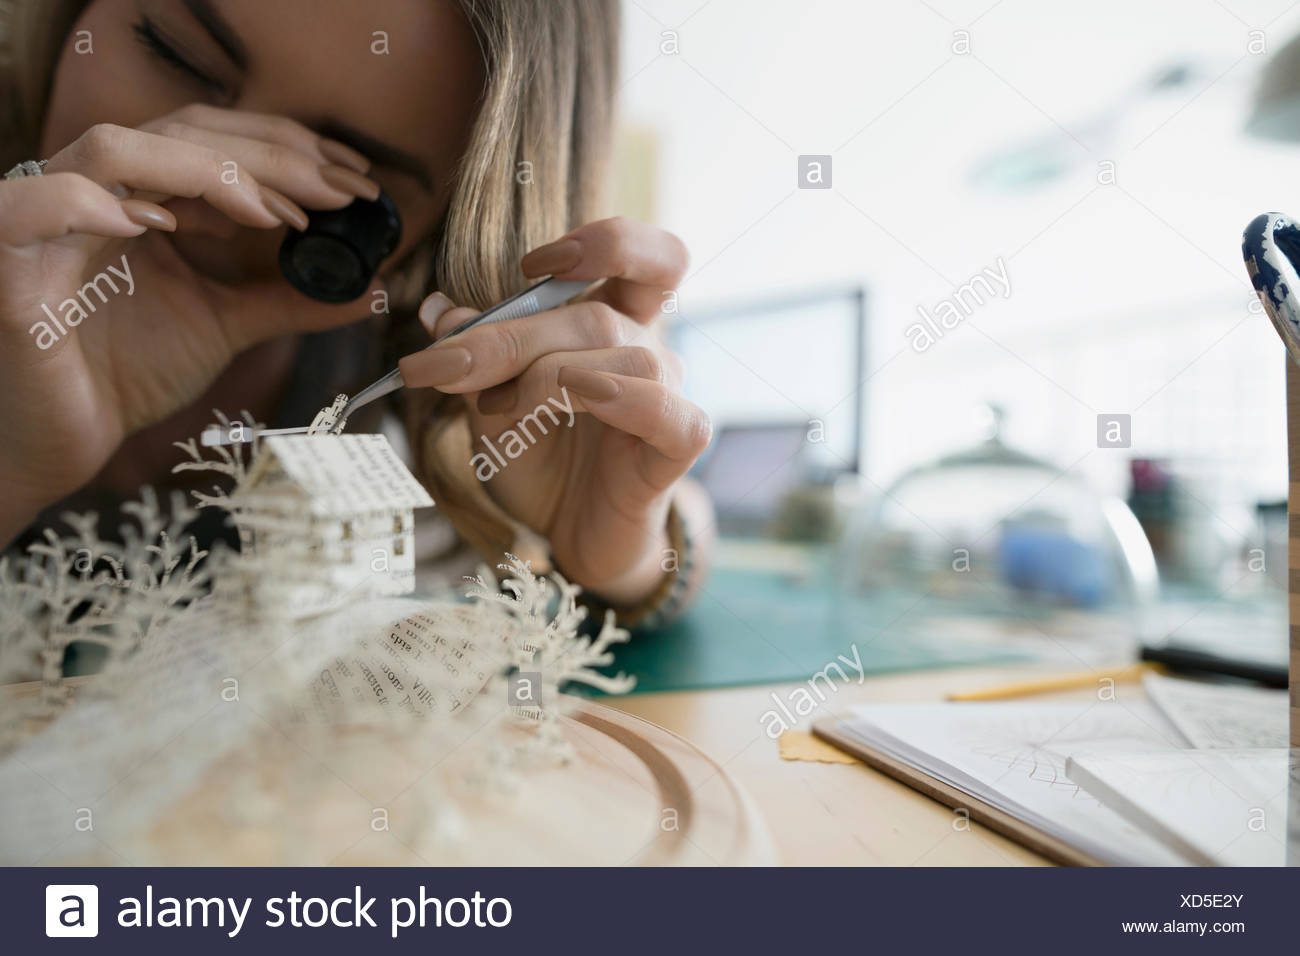 Craftswoman using loupe to assemble paper diorama - Stock Image